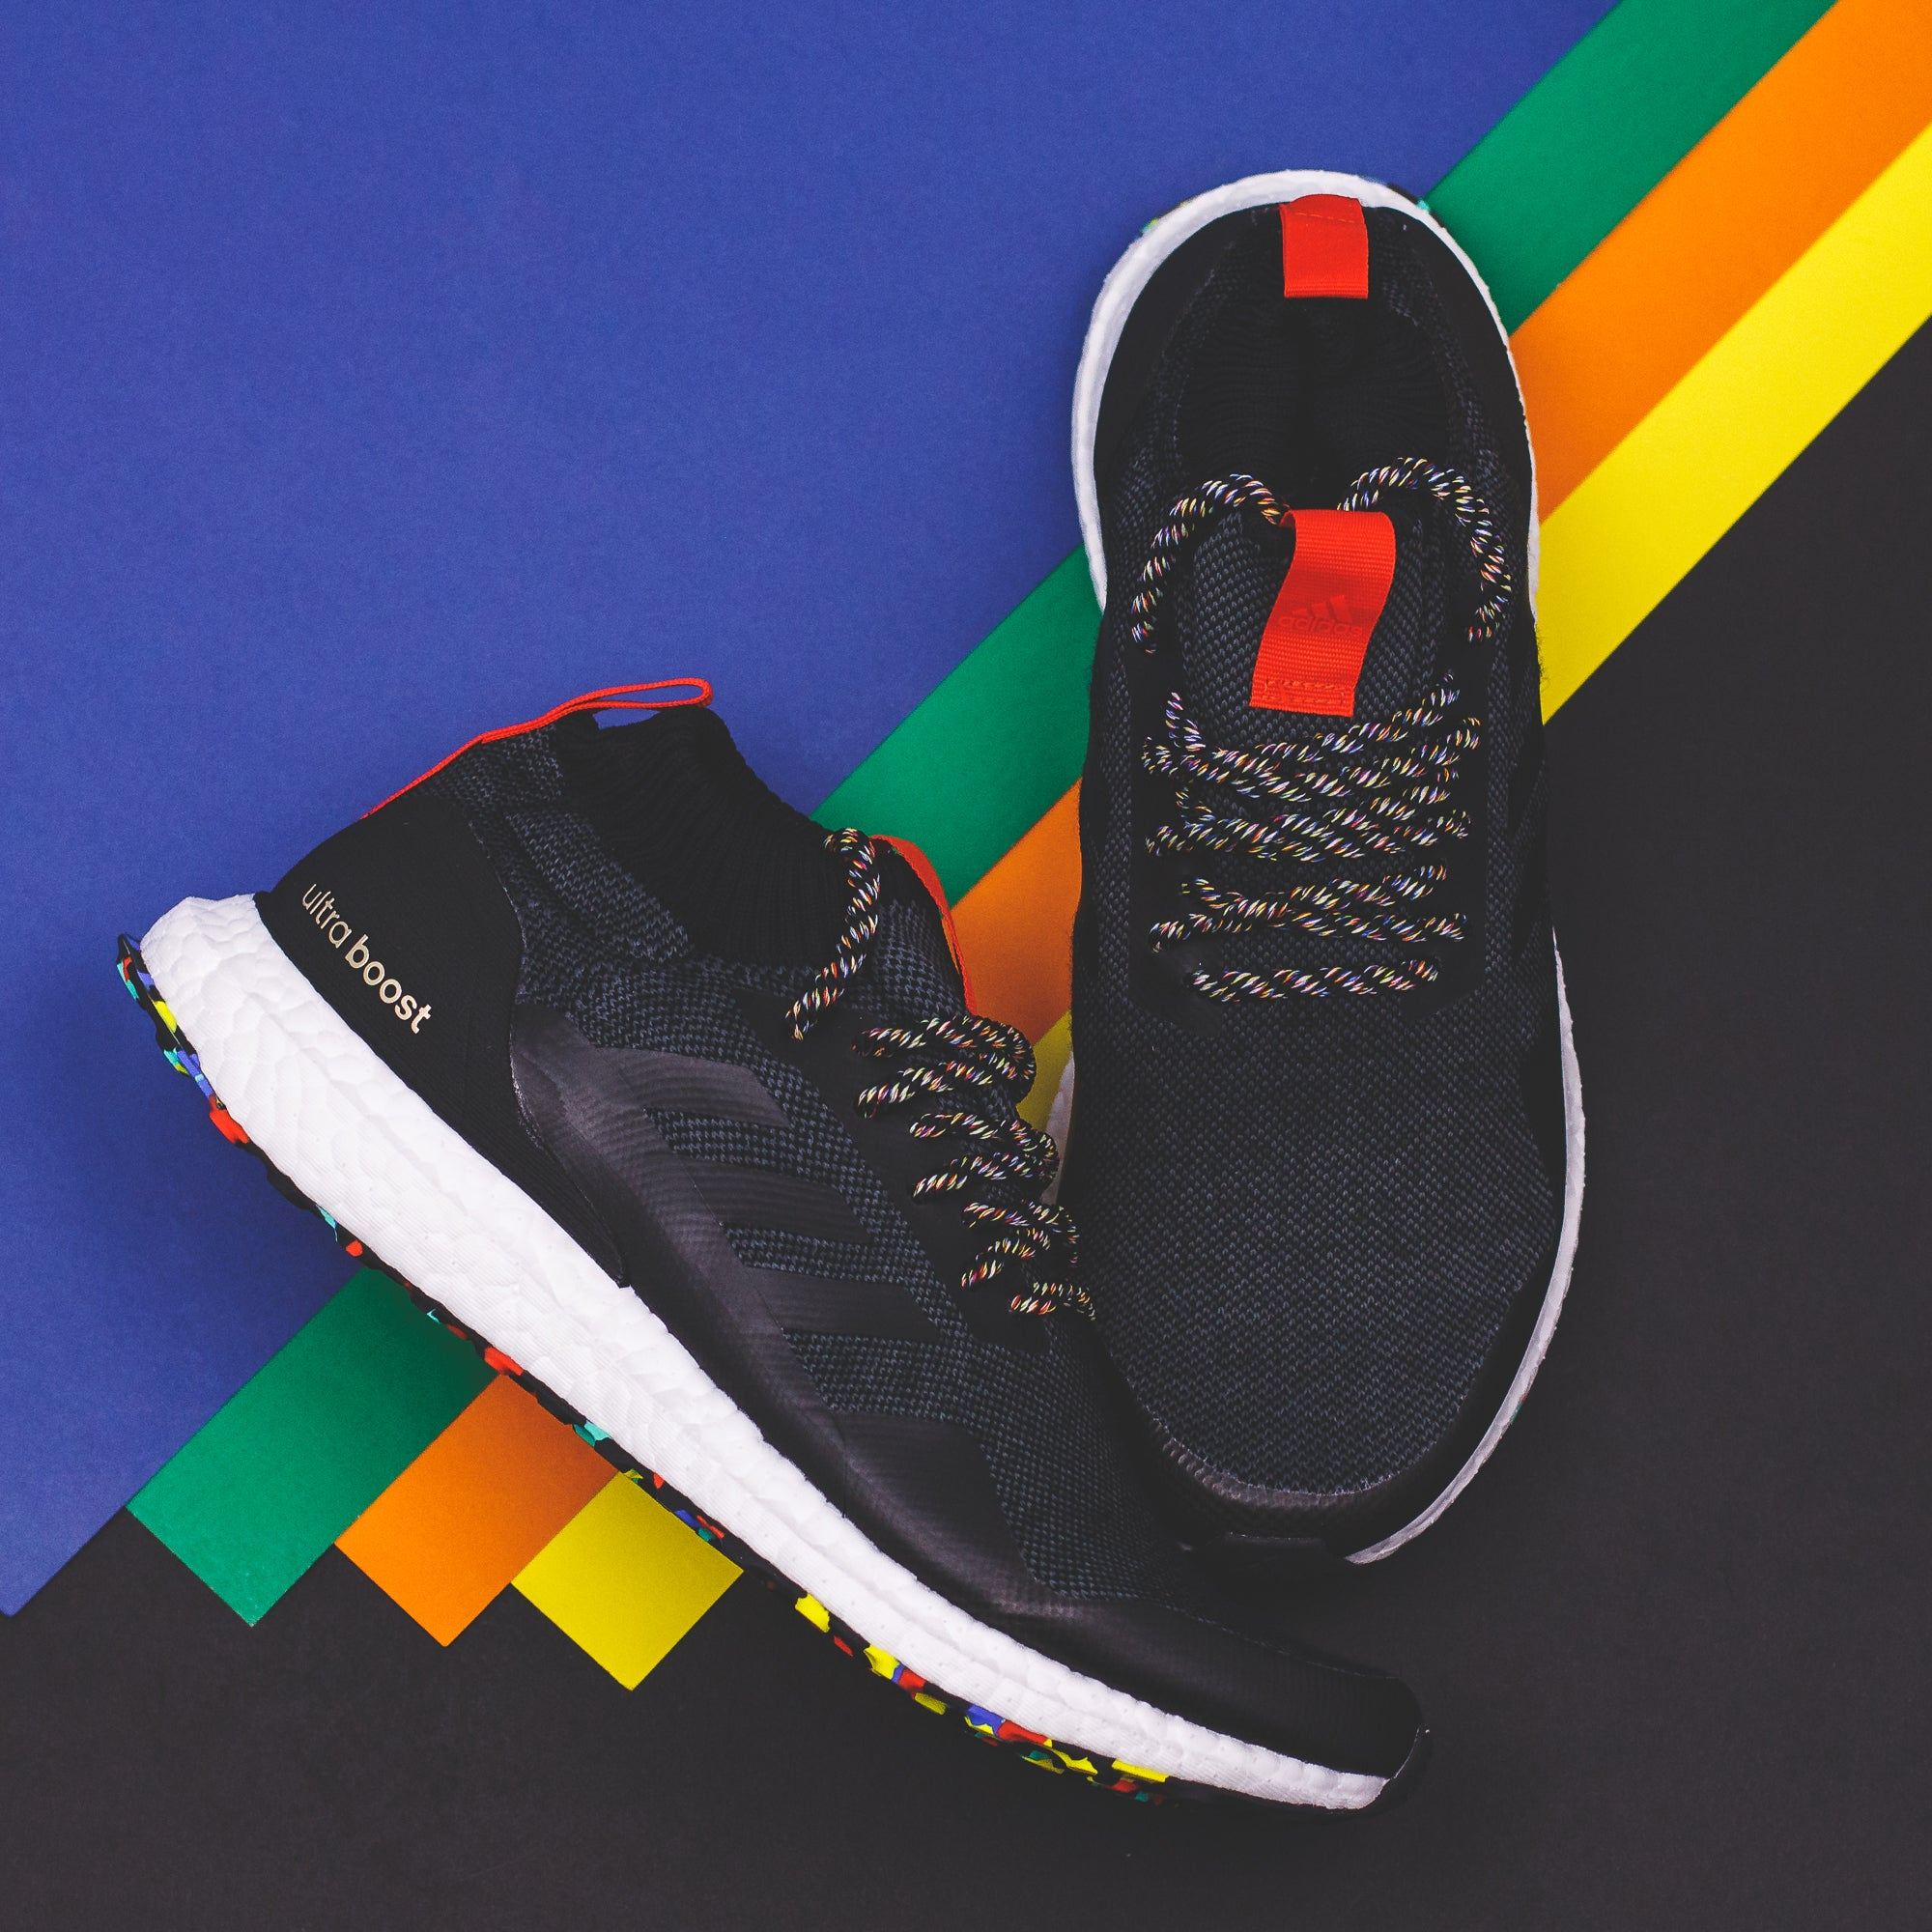 aaa68f3ec7291 adidas Running Ultra Boost Mid Multicolour - (G26841). Price   300 CAD.  Available Sizing  7-13 US MENS. Click Shop Now when the release is  available online!